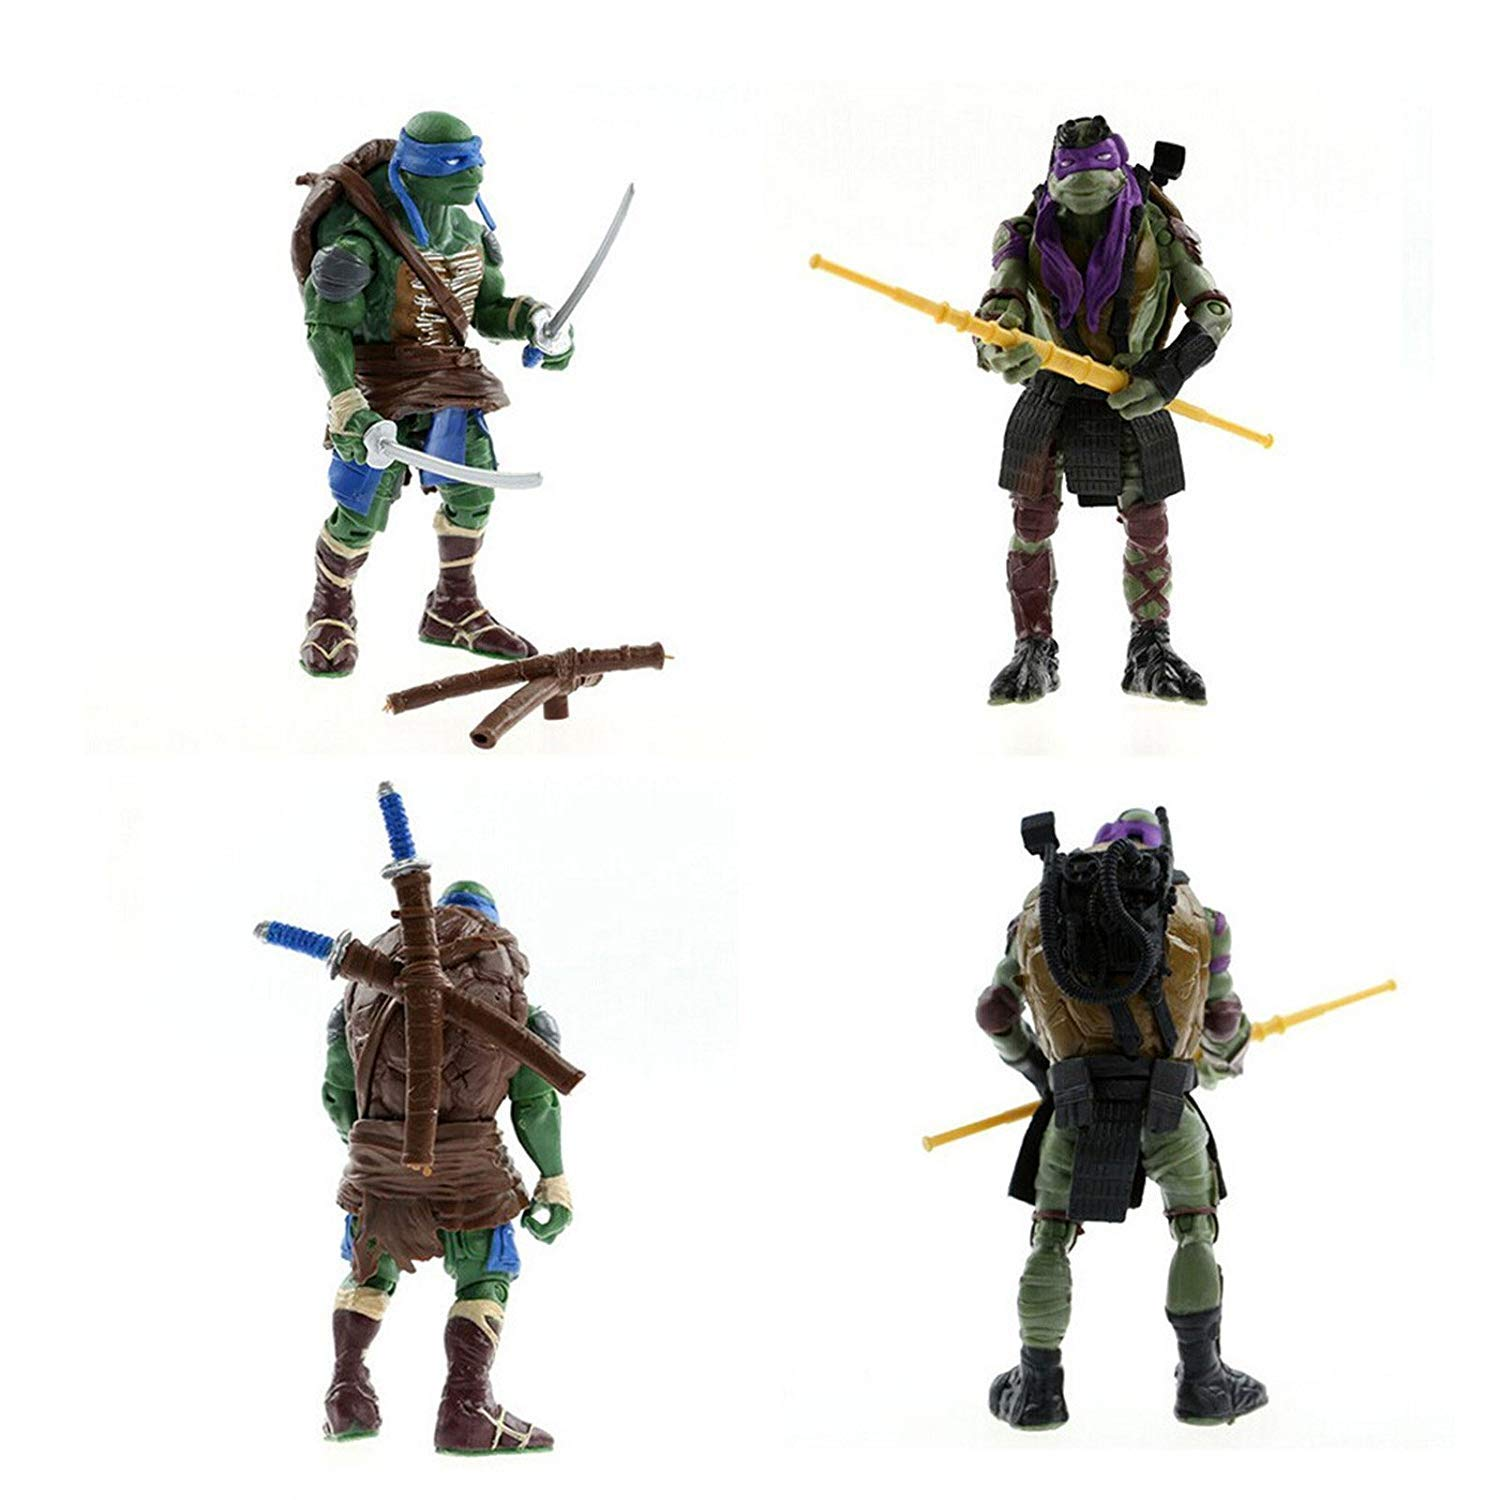 Peton Teenage Mutant Ninja Turtles Movie 5 Action Figure TMNT 4pcs//Lot Toys LY